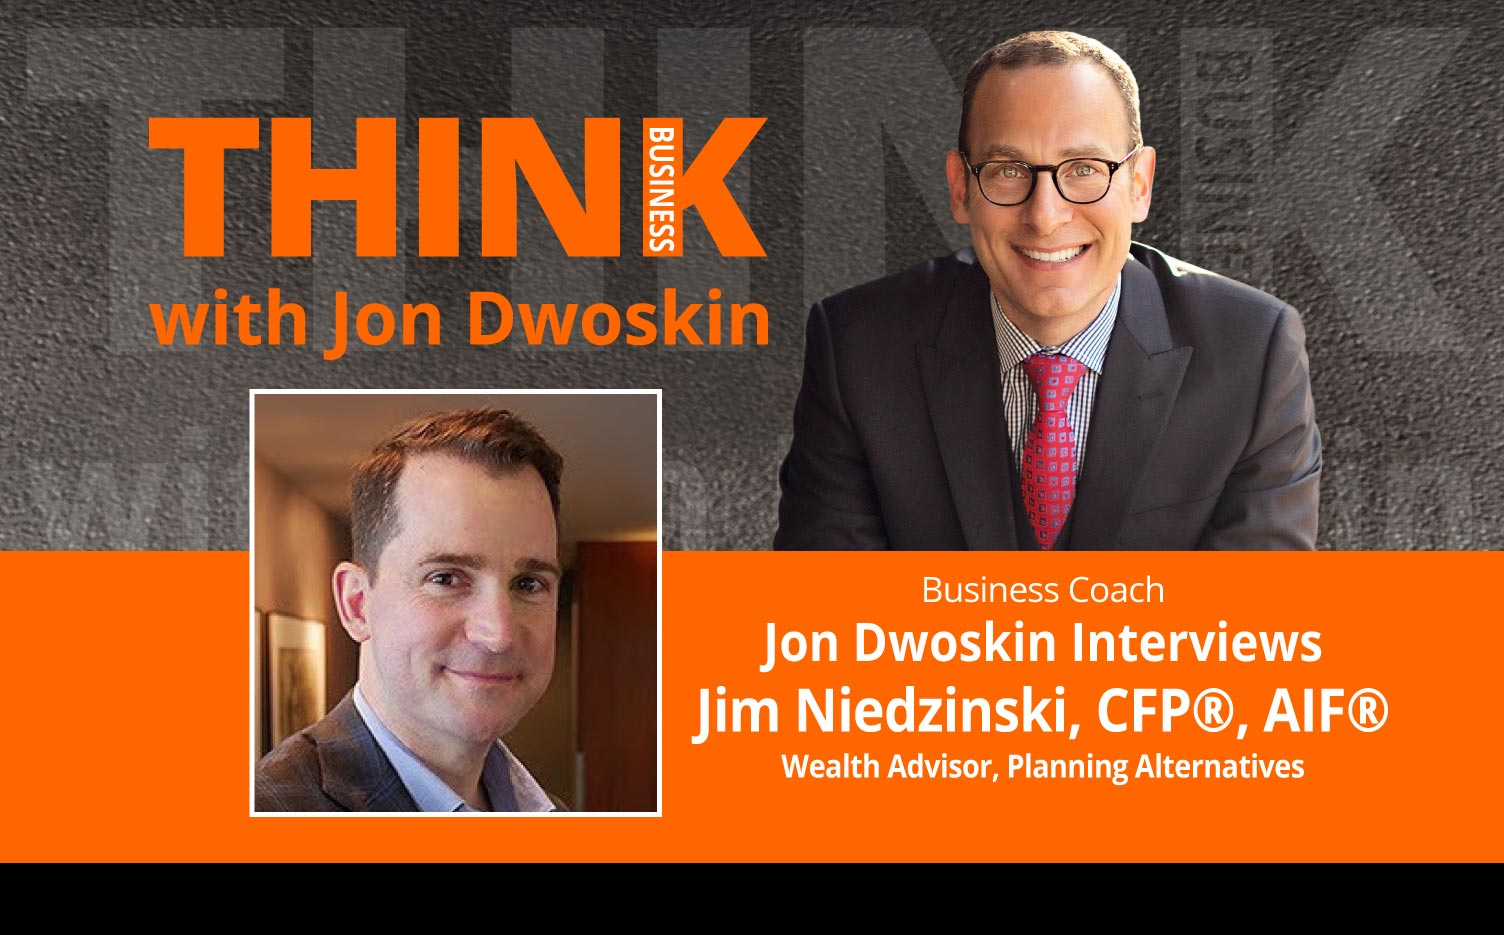 THINK Business Podcast: Jon Dwoskin Interviews Jim Niedzinski, CFP®, AIF®, Wealth Advisor, Planning Alternatives